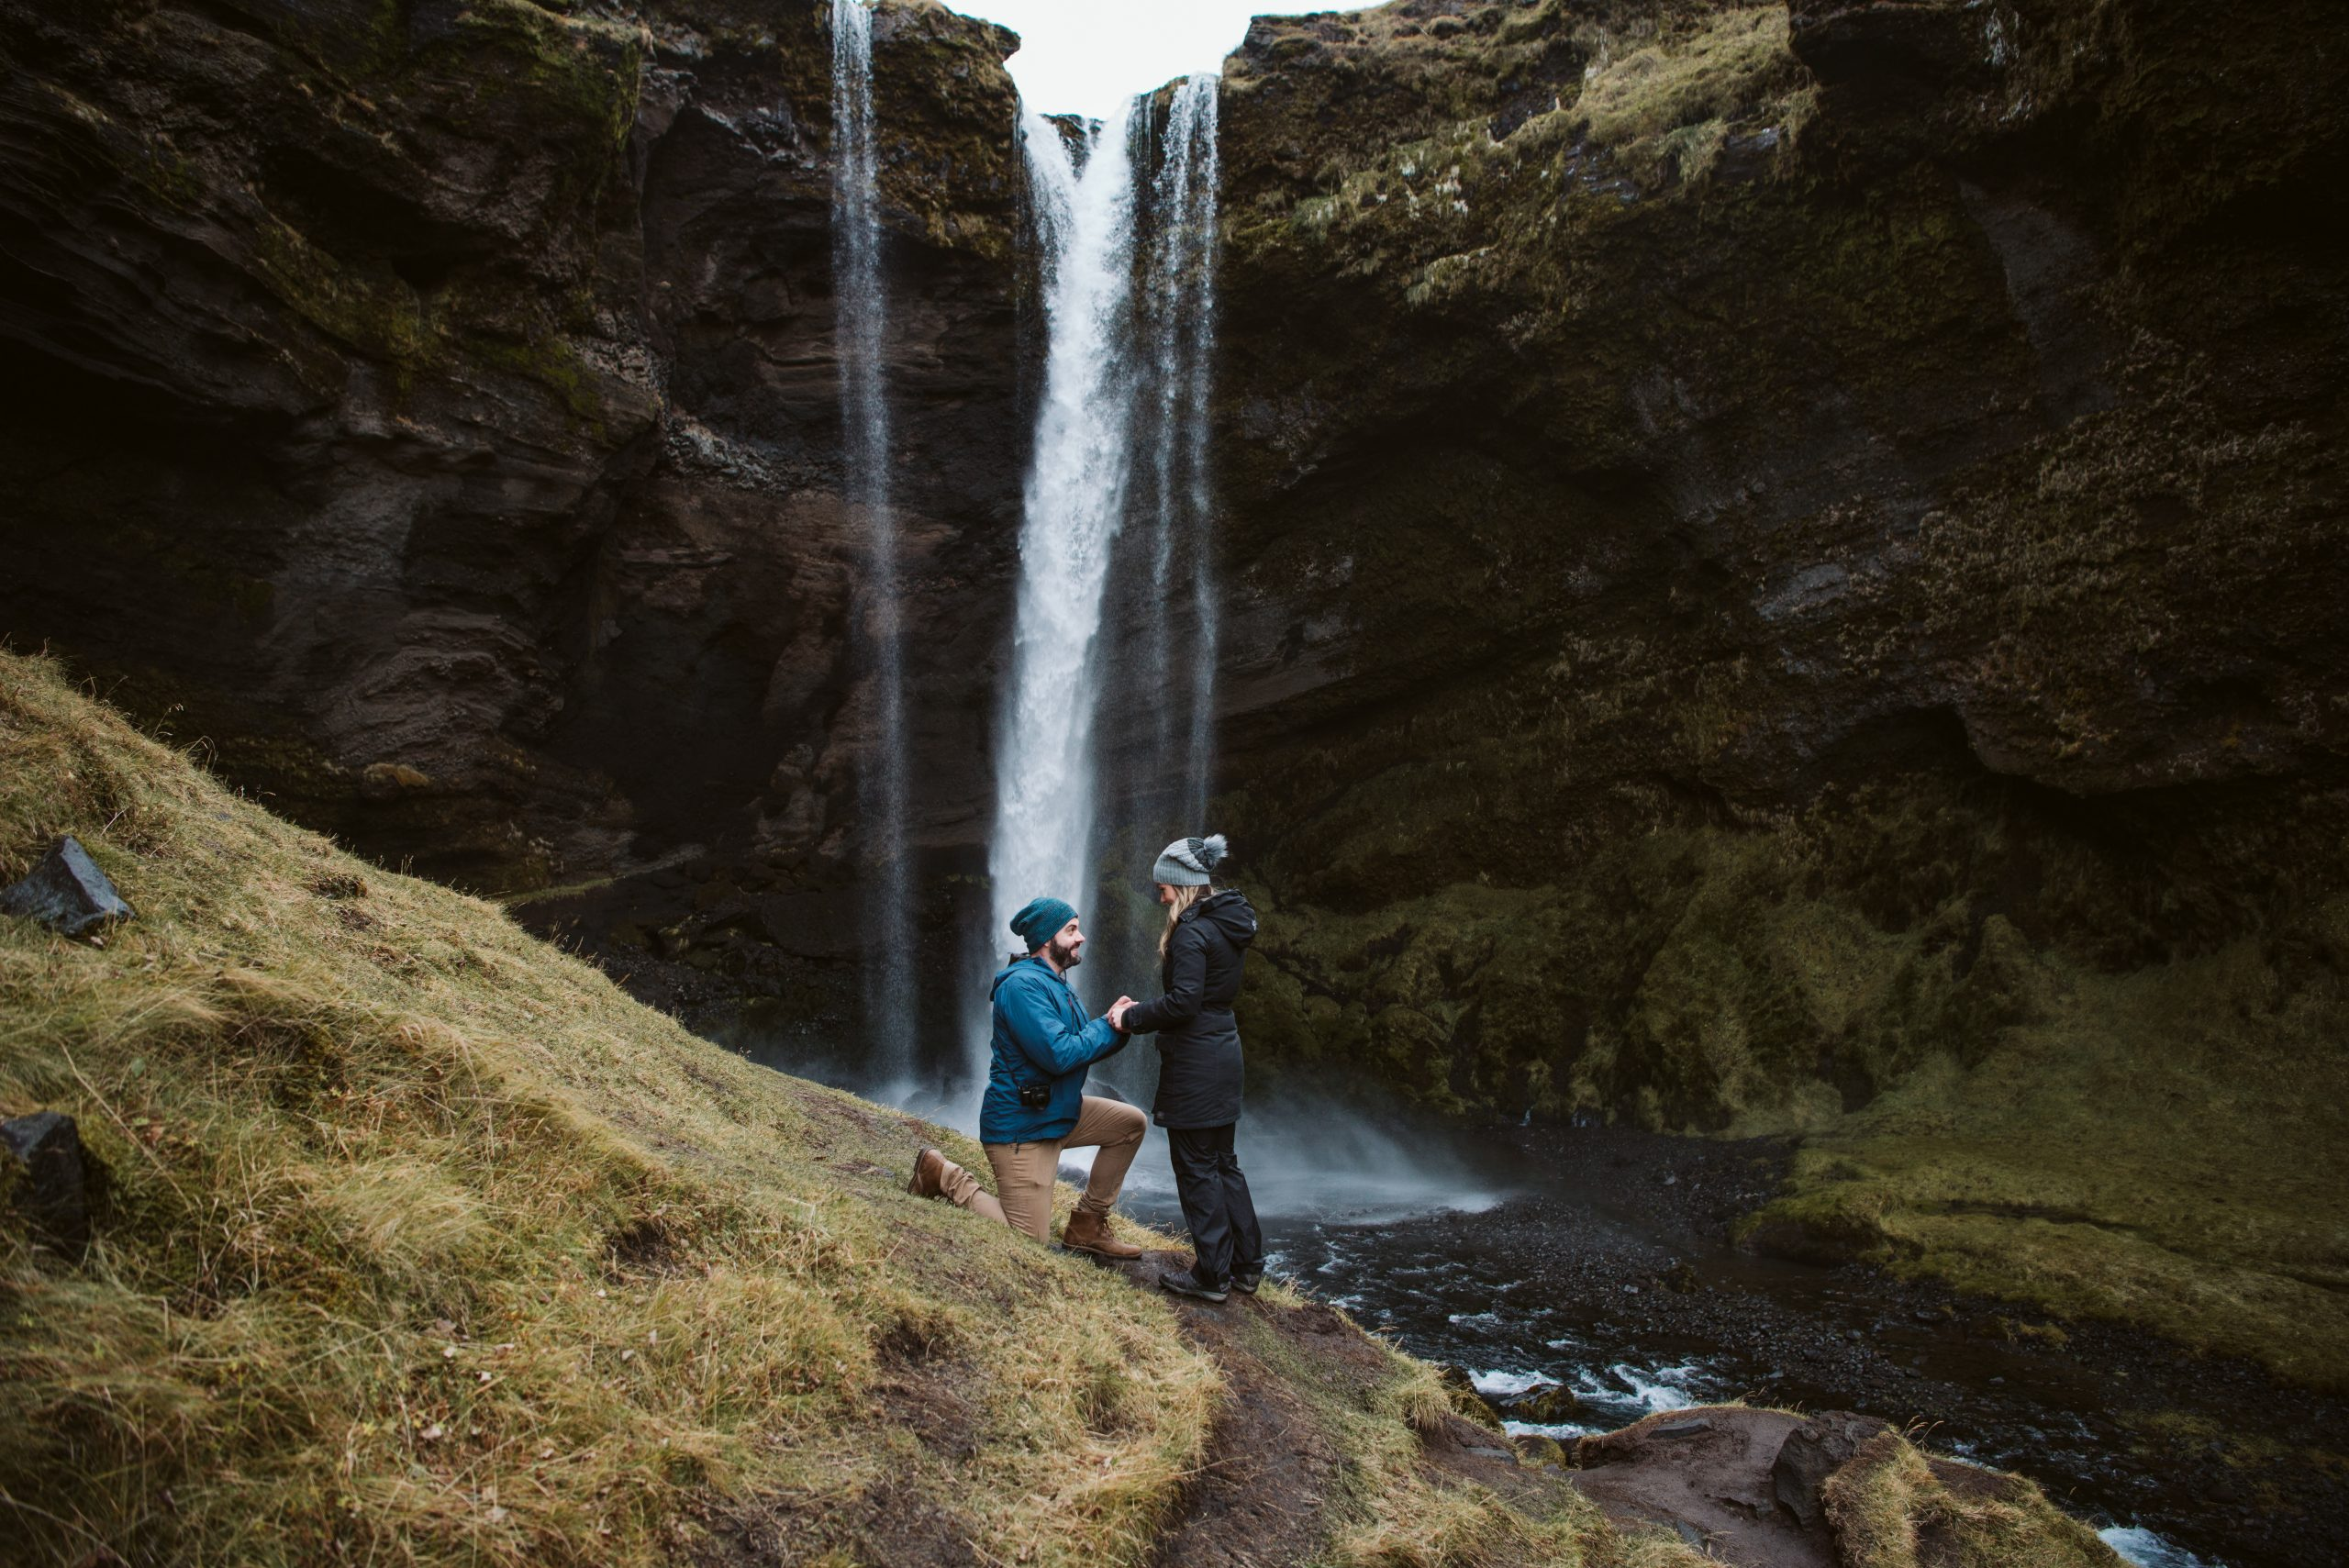 Matt proposing to Jackie at a Secret waterfall during their Iceland Proposal in early winter.